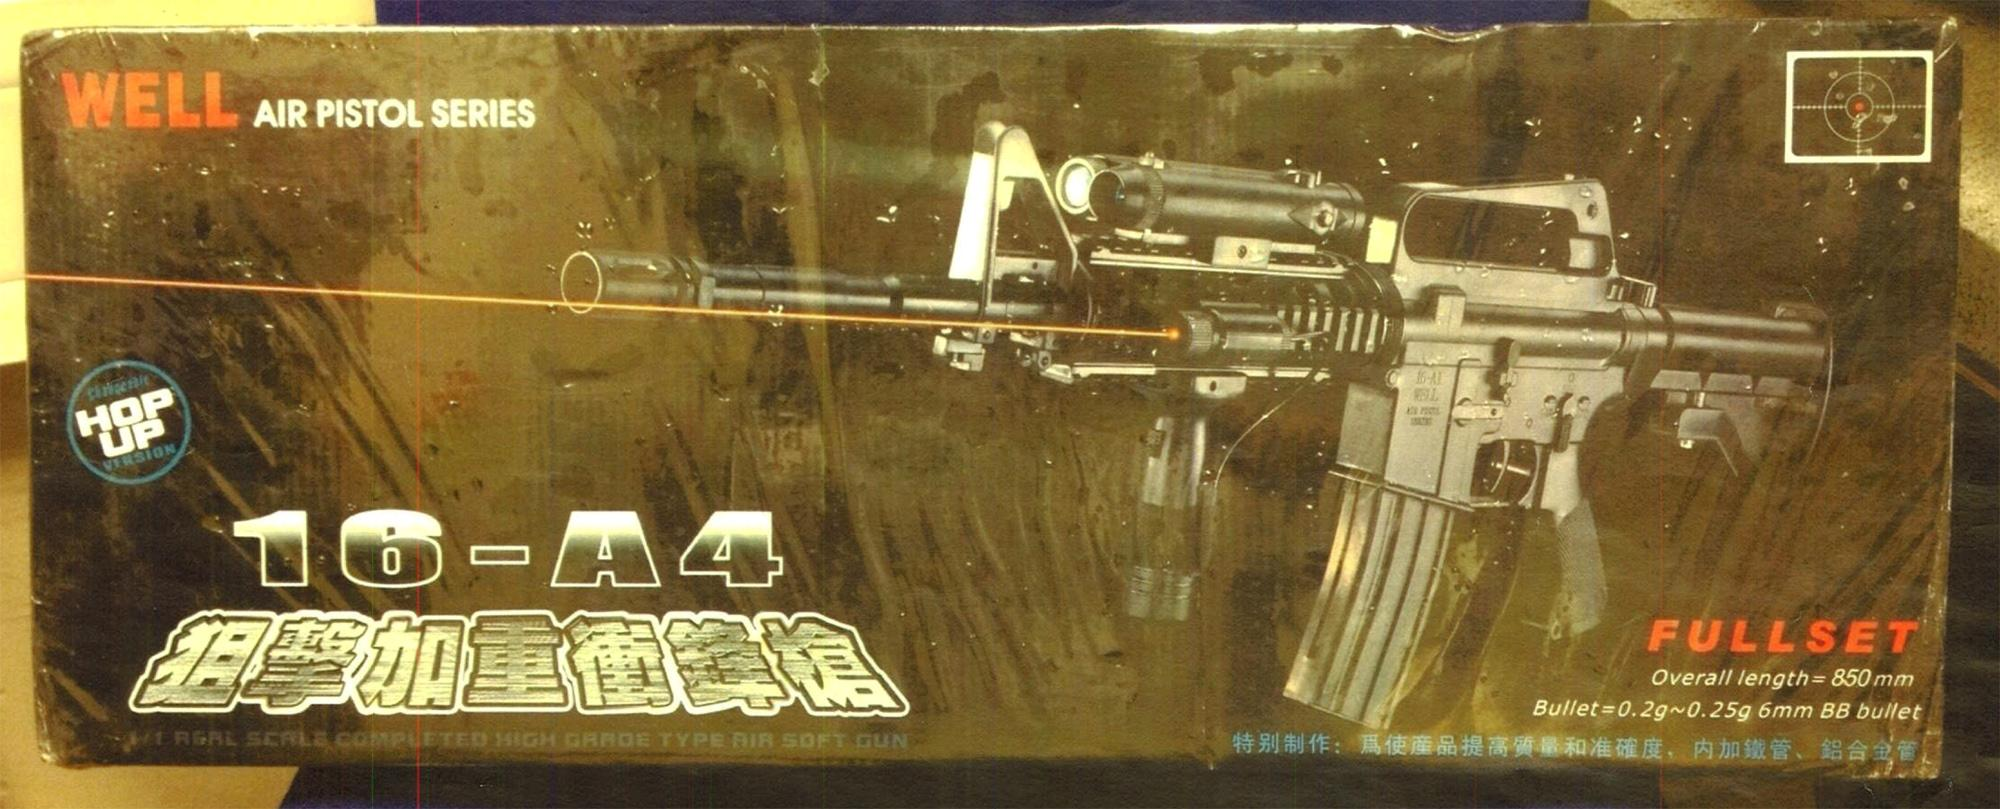 The Well brand replica guns, which retail at about £60 each, were found in their original packaging